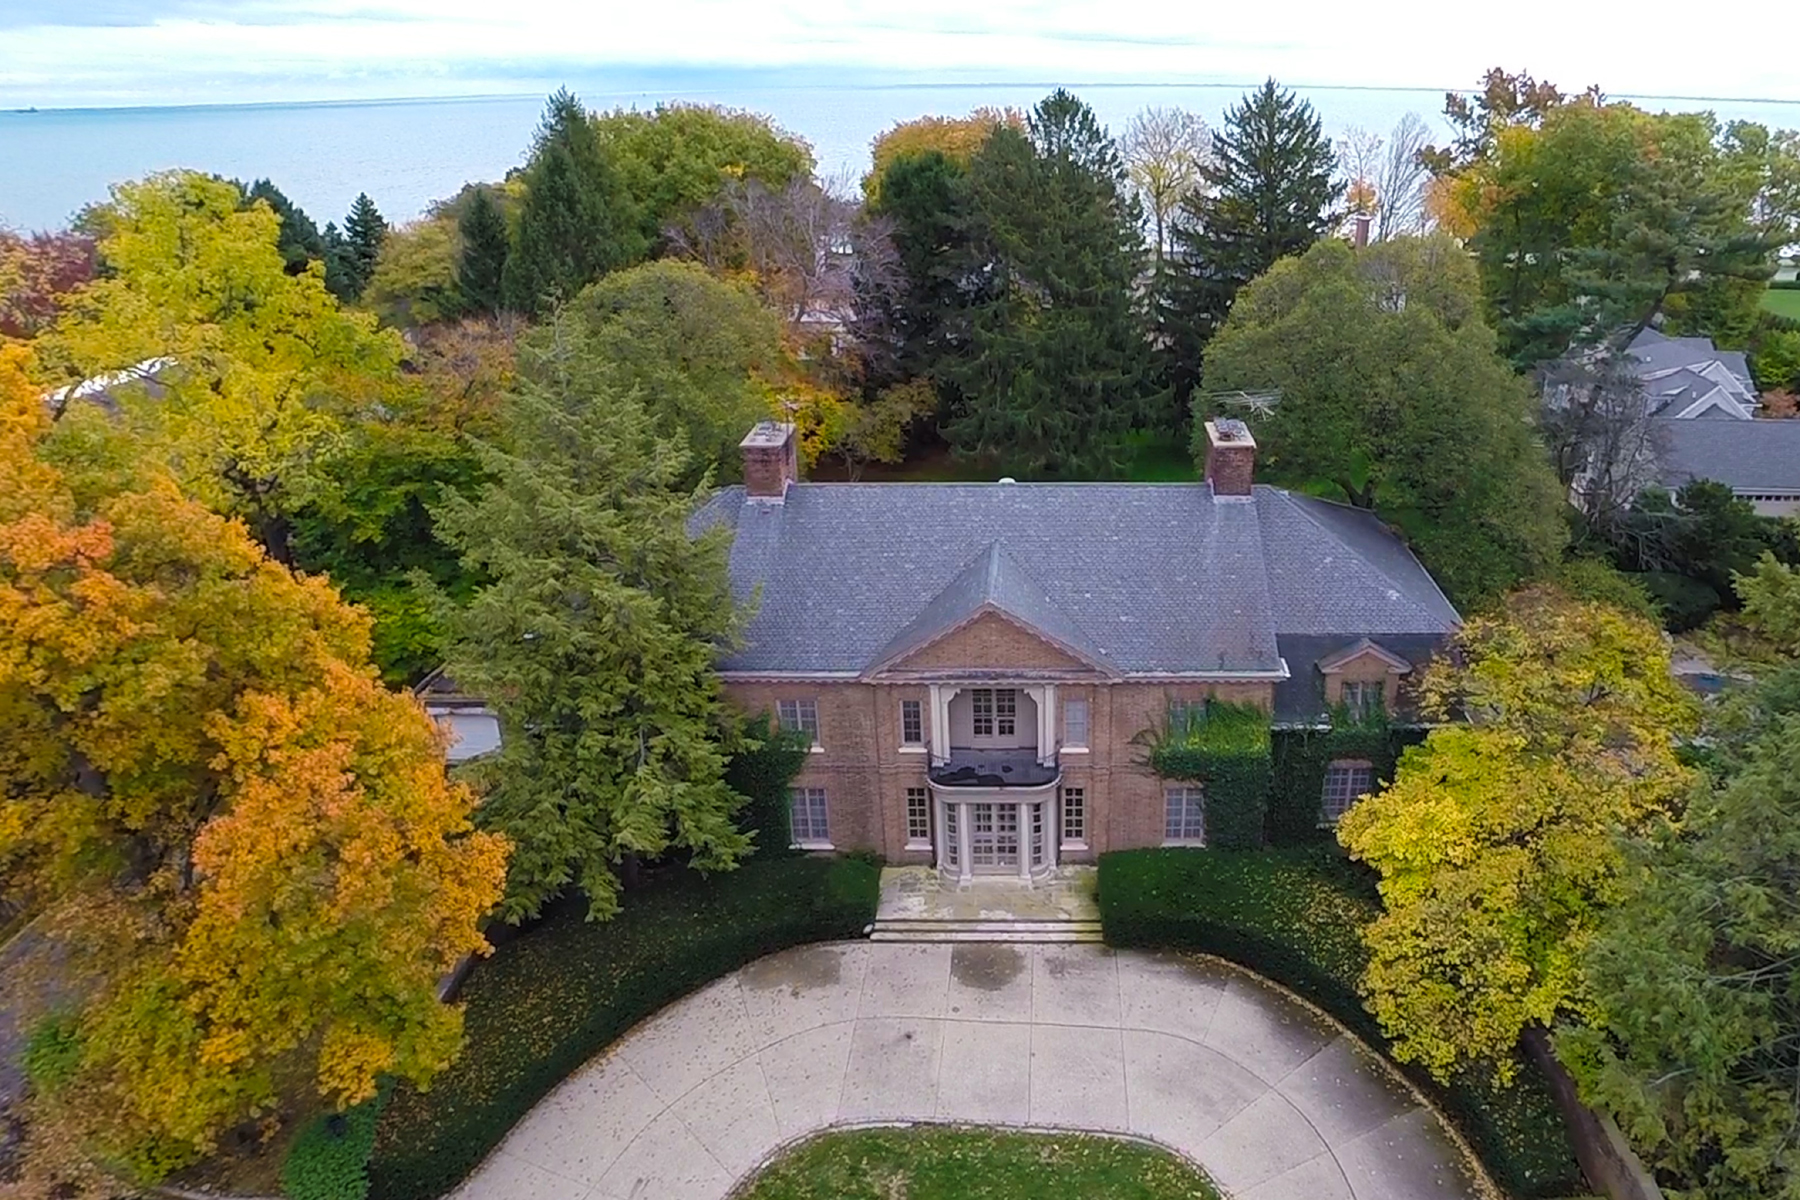 Single Family Home for Sale at Grosse Pointe Farms 30-A Preston Grosse Pointe Farms, Michigan, 48236 United States